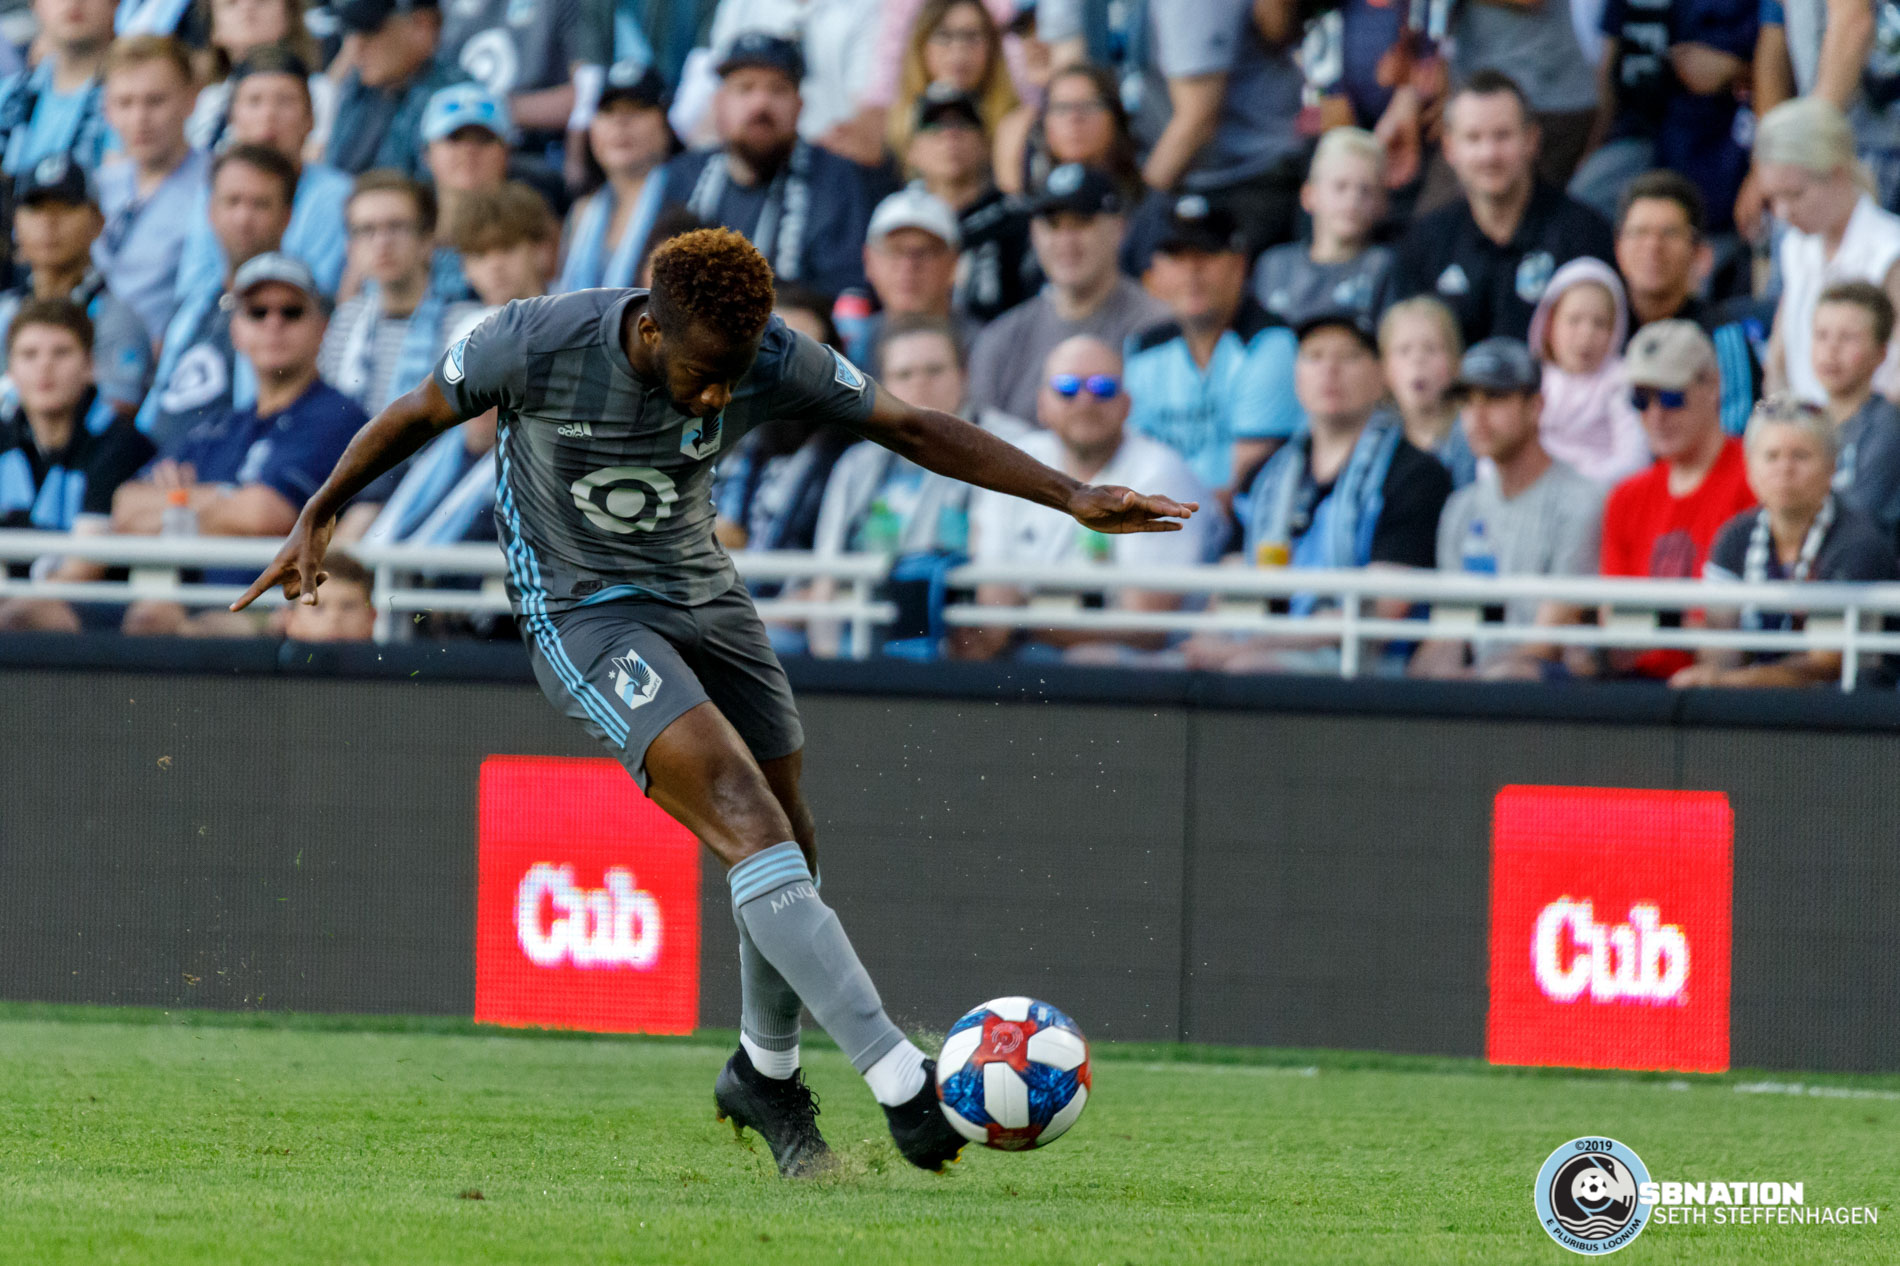 July 10, 2019 - Saint Paul, Minnesota, United States - Minnesota United midfielder Kevin Molino (7) passes the ball  during the quarter-final match of the US Open Cup between Minnesota United and New Mexico United at Allianz Field.